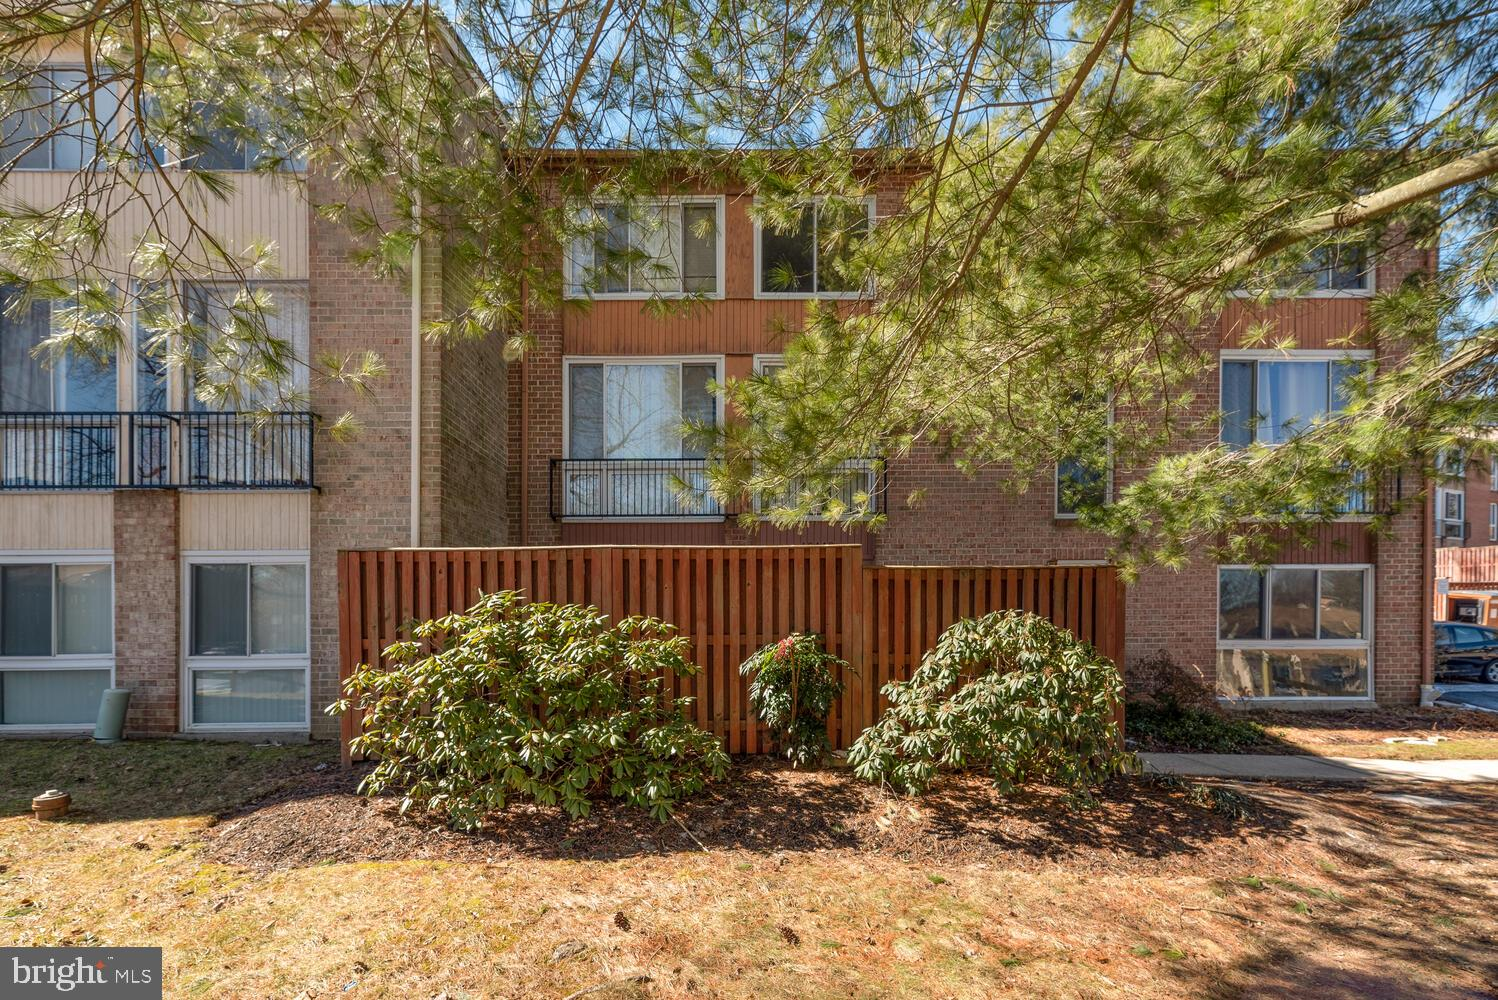 Bright, open, and newly renovated, this two bedroom, two bath condo in the Village of Wilde Lake is